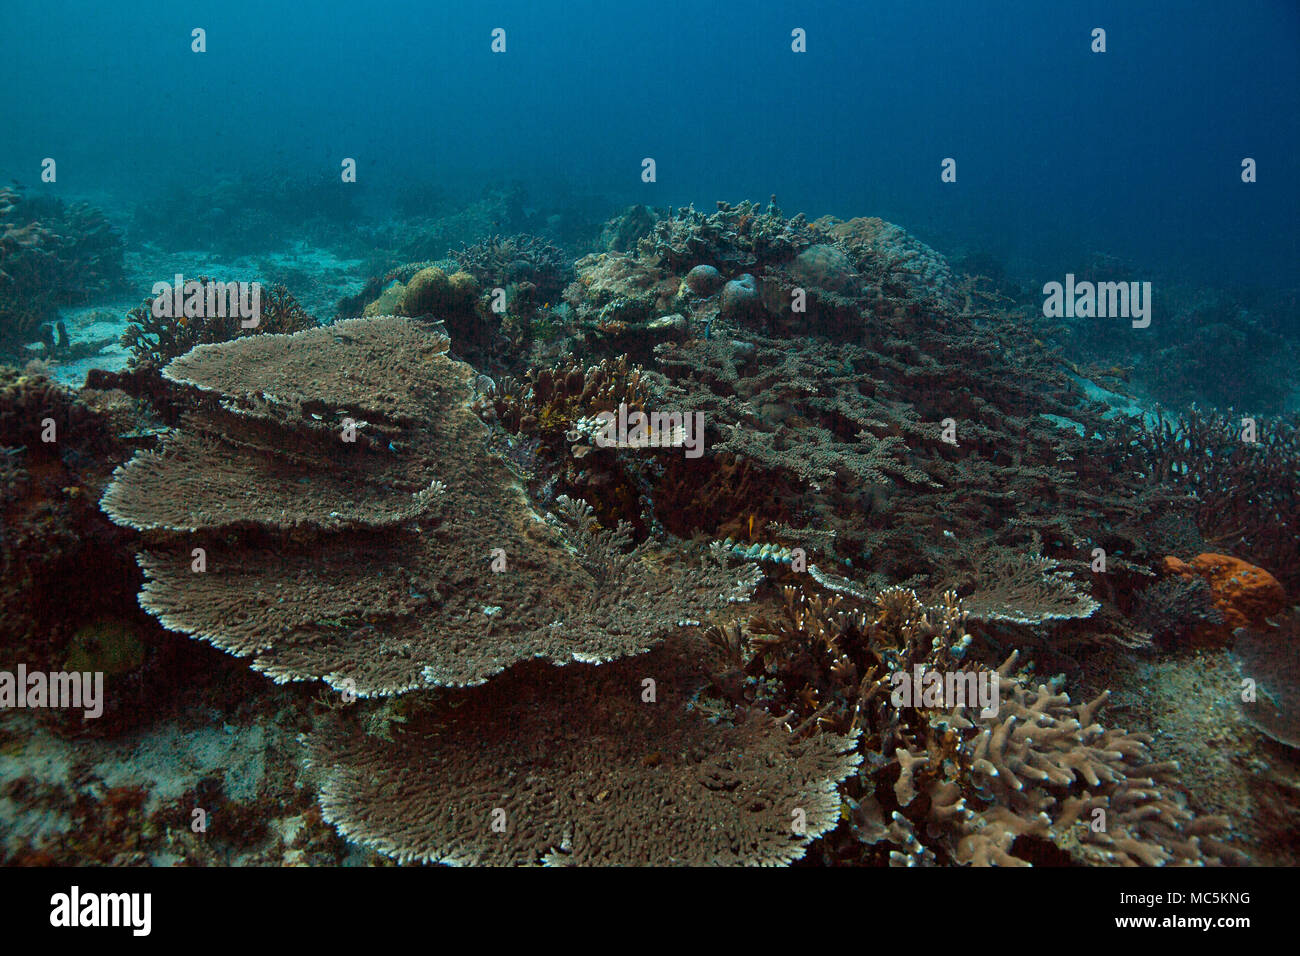 Wonderful hard corals. Picture was taken in the Ceram sea, Raja Ampat, West Papua, Indonesia Stock Photo